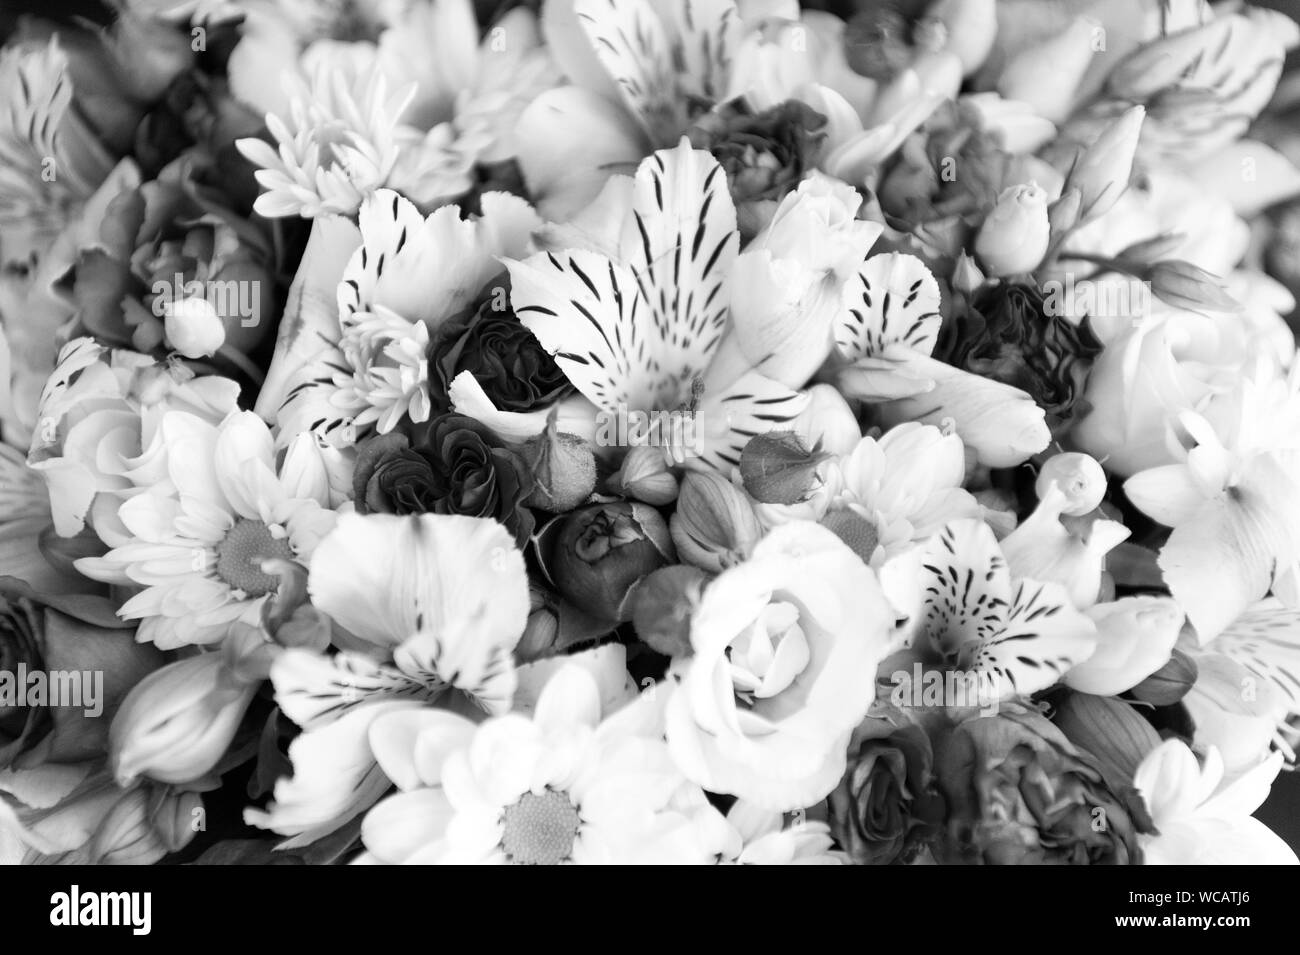 Fresh natural flowers bouquet texture. Happy holidays. Flowers delivery service. Floristic service. Flowers decoration. Fragrance of roses ranunculus orchids and chamomile flowers. Botany background. Stock Photo